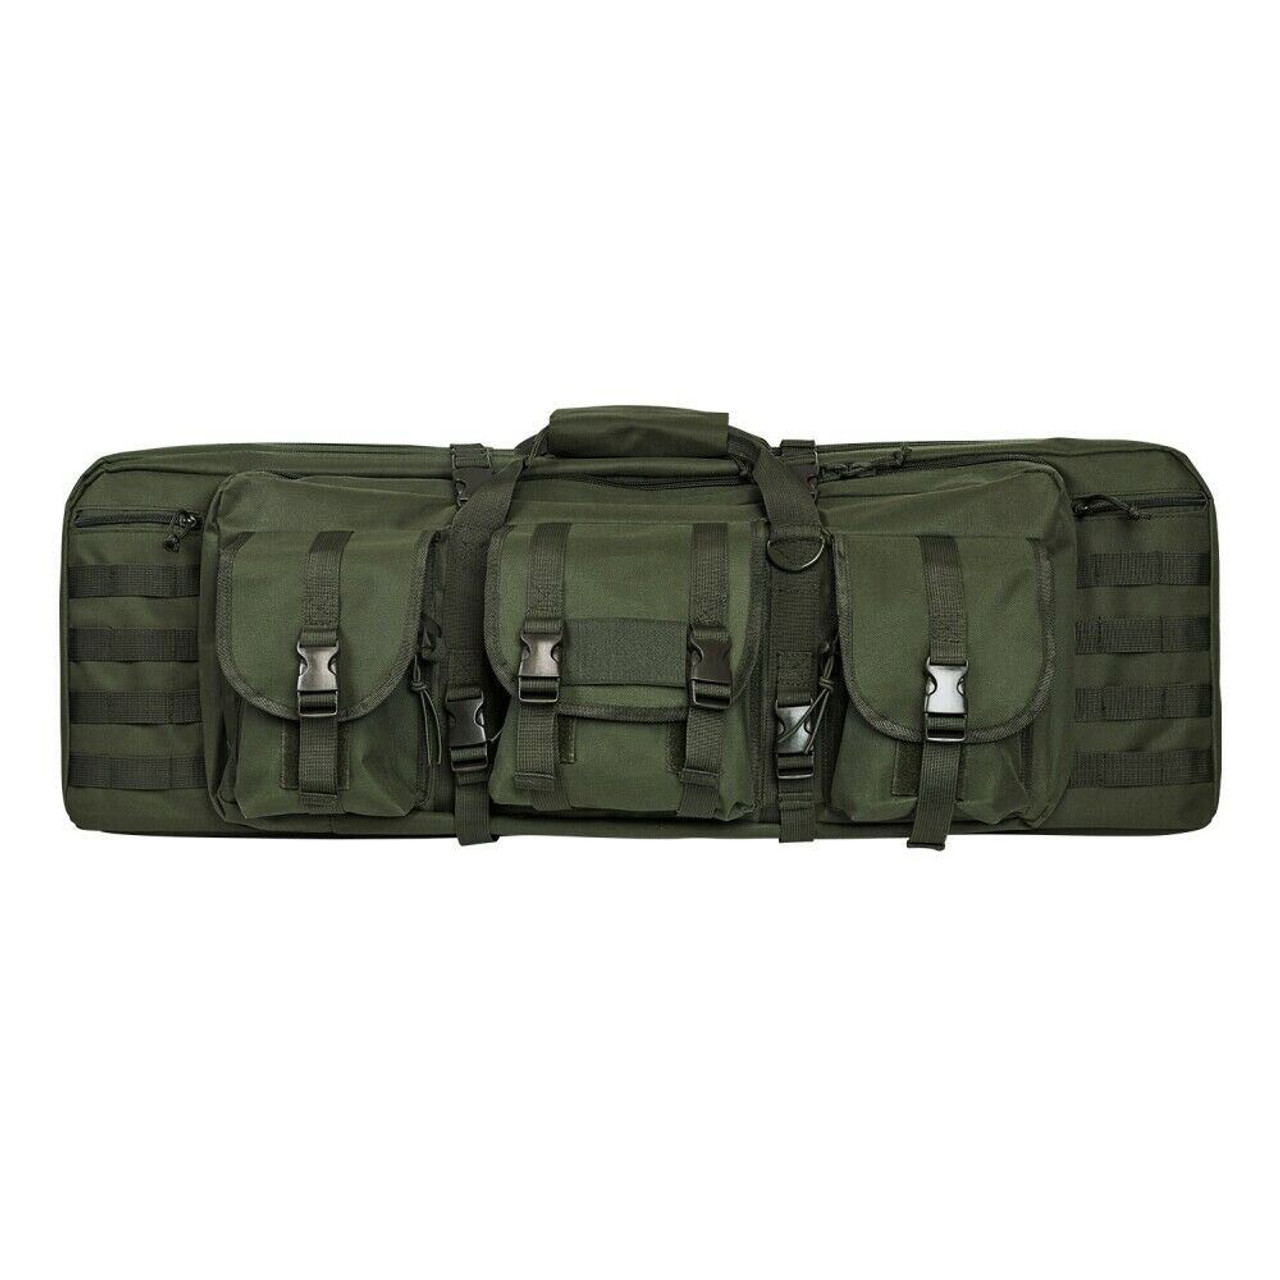 NcSTAR CVDC2946G-36 Tactical Double Rifle Case Green 36 inch long Padded Molle